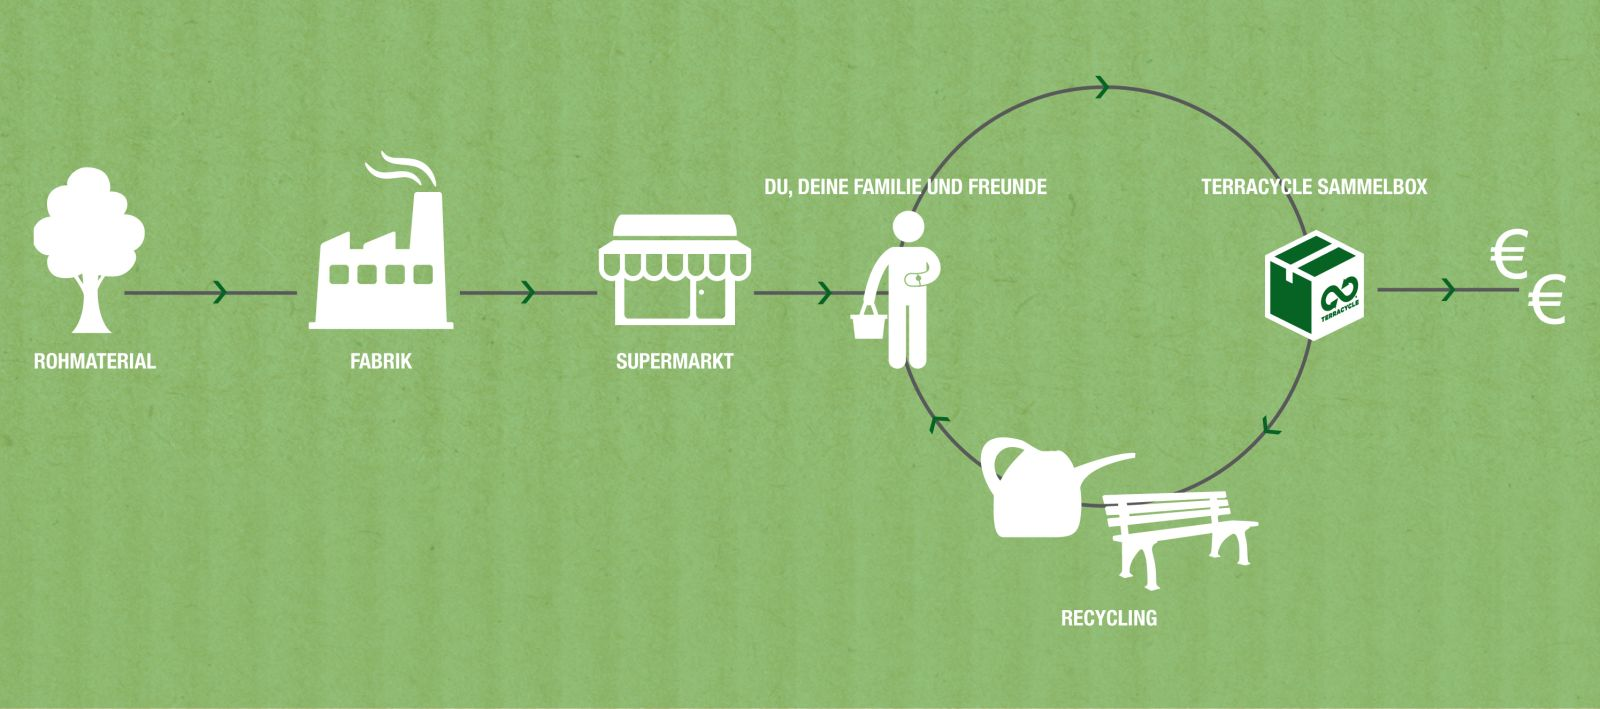 Recyclingprozess von TerraCycle